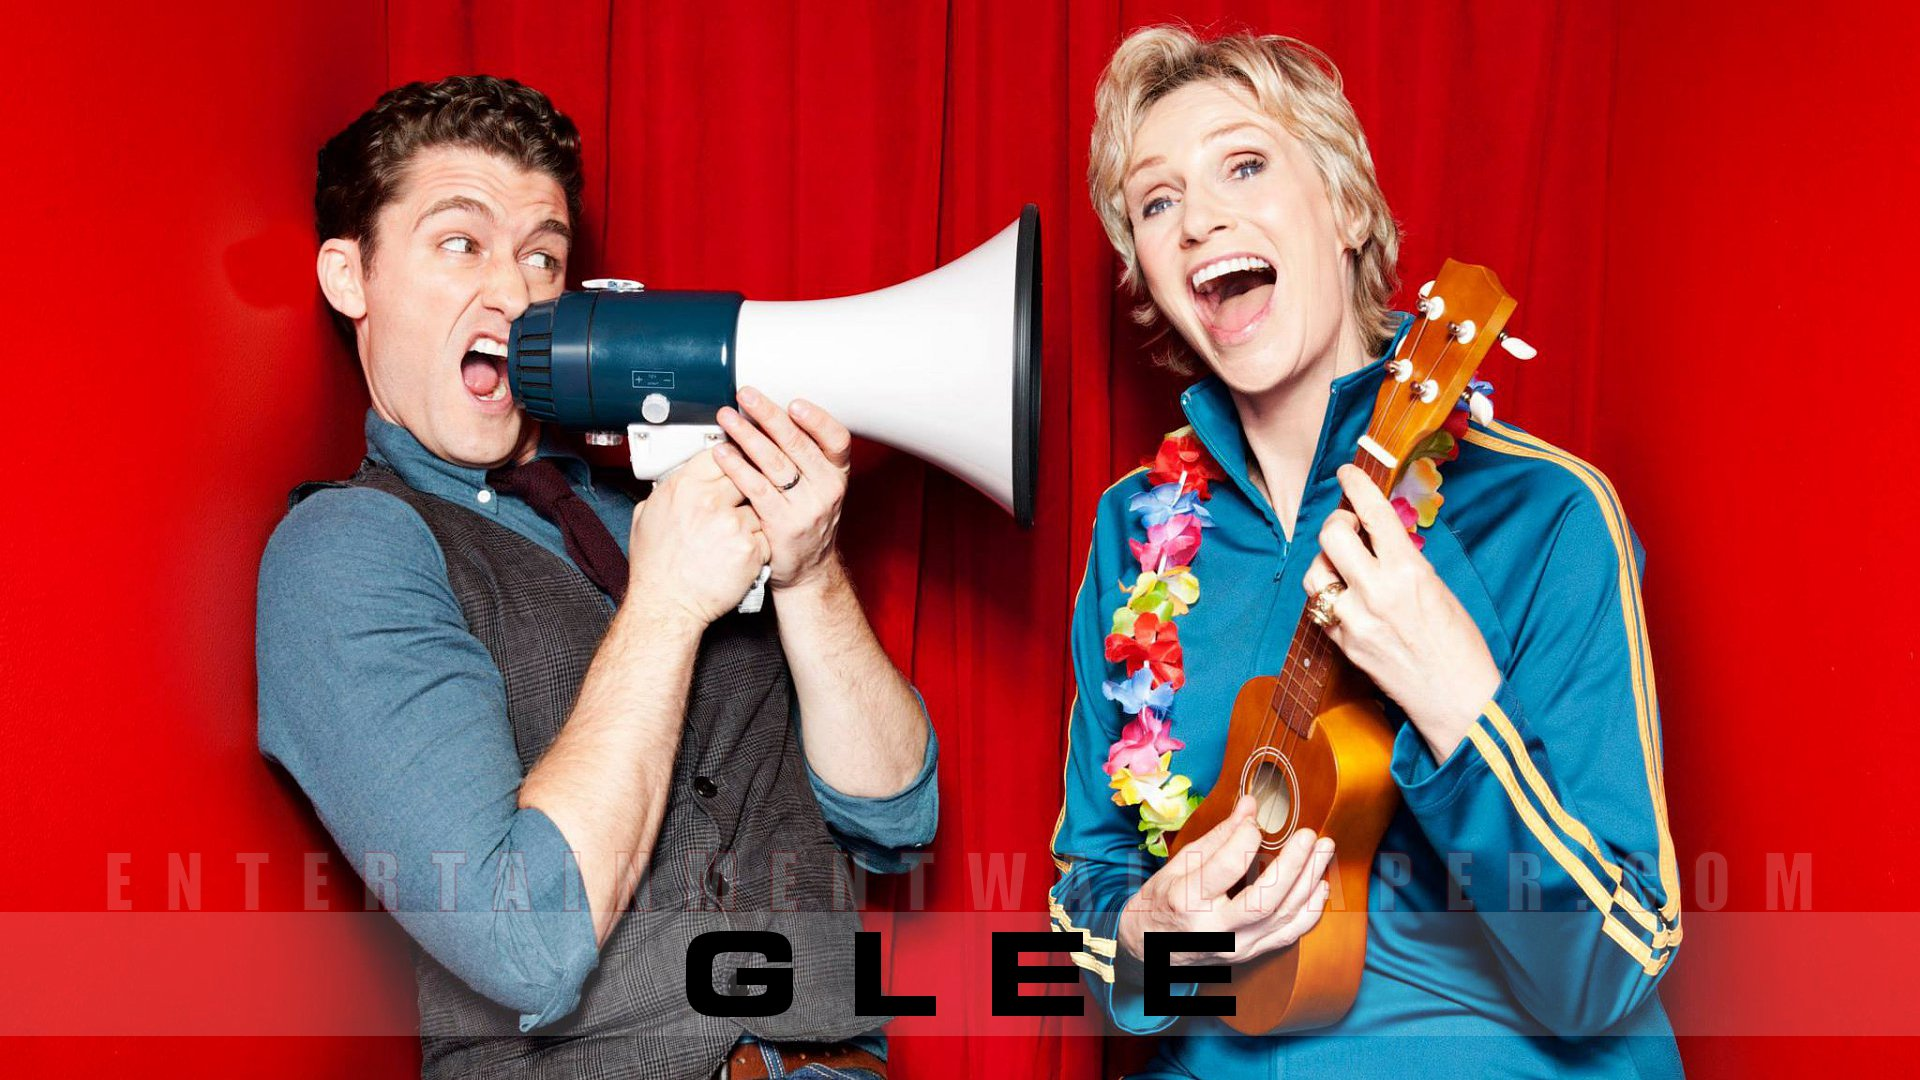 tv show glee wallpaper 20044060 size 1920x1080 more glee wallpaper 1920x1080